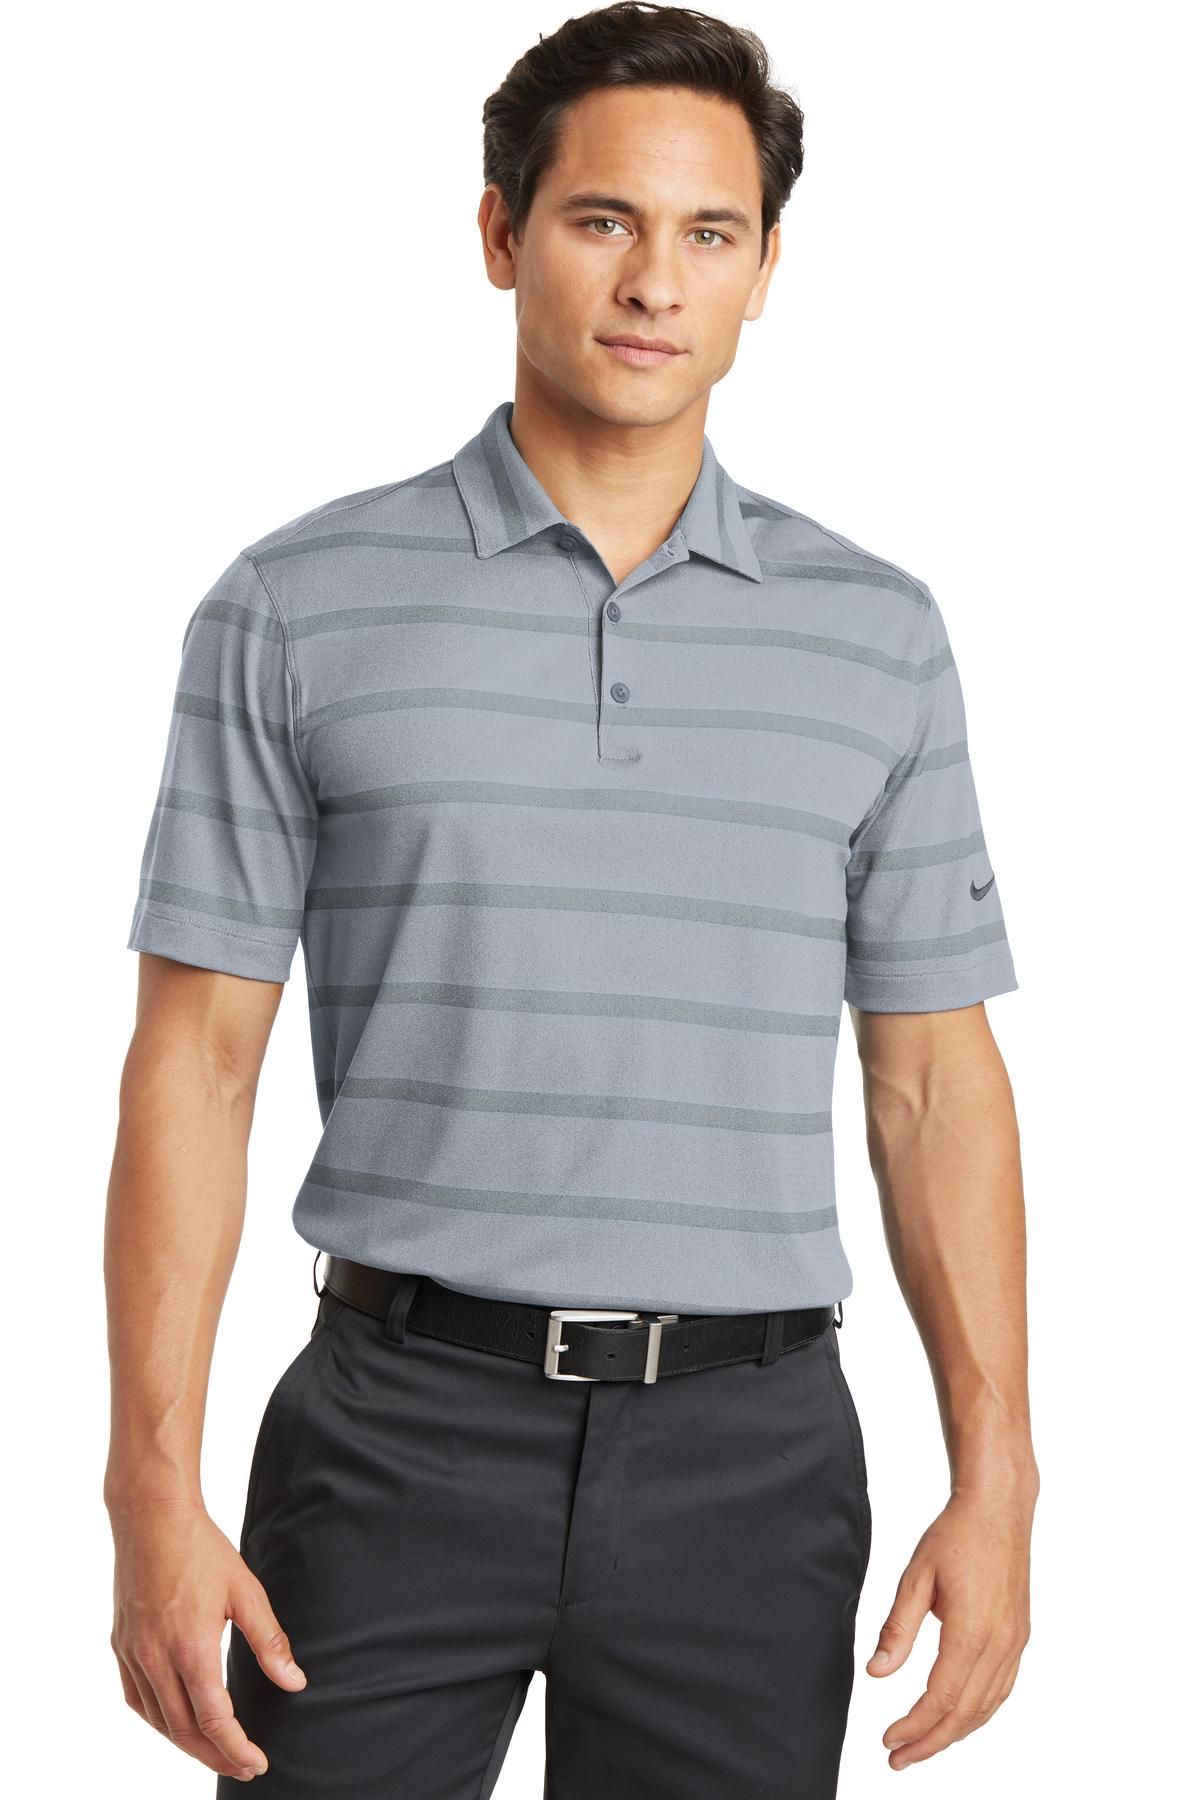 Nike Dri-FIT Fade Stripe Polo. 677786 - Dark Steel Grey/ Anthracite